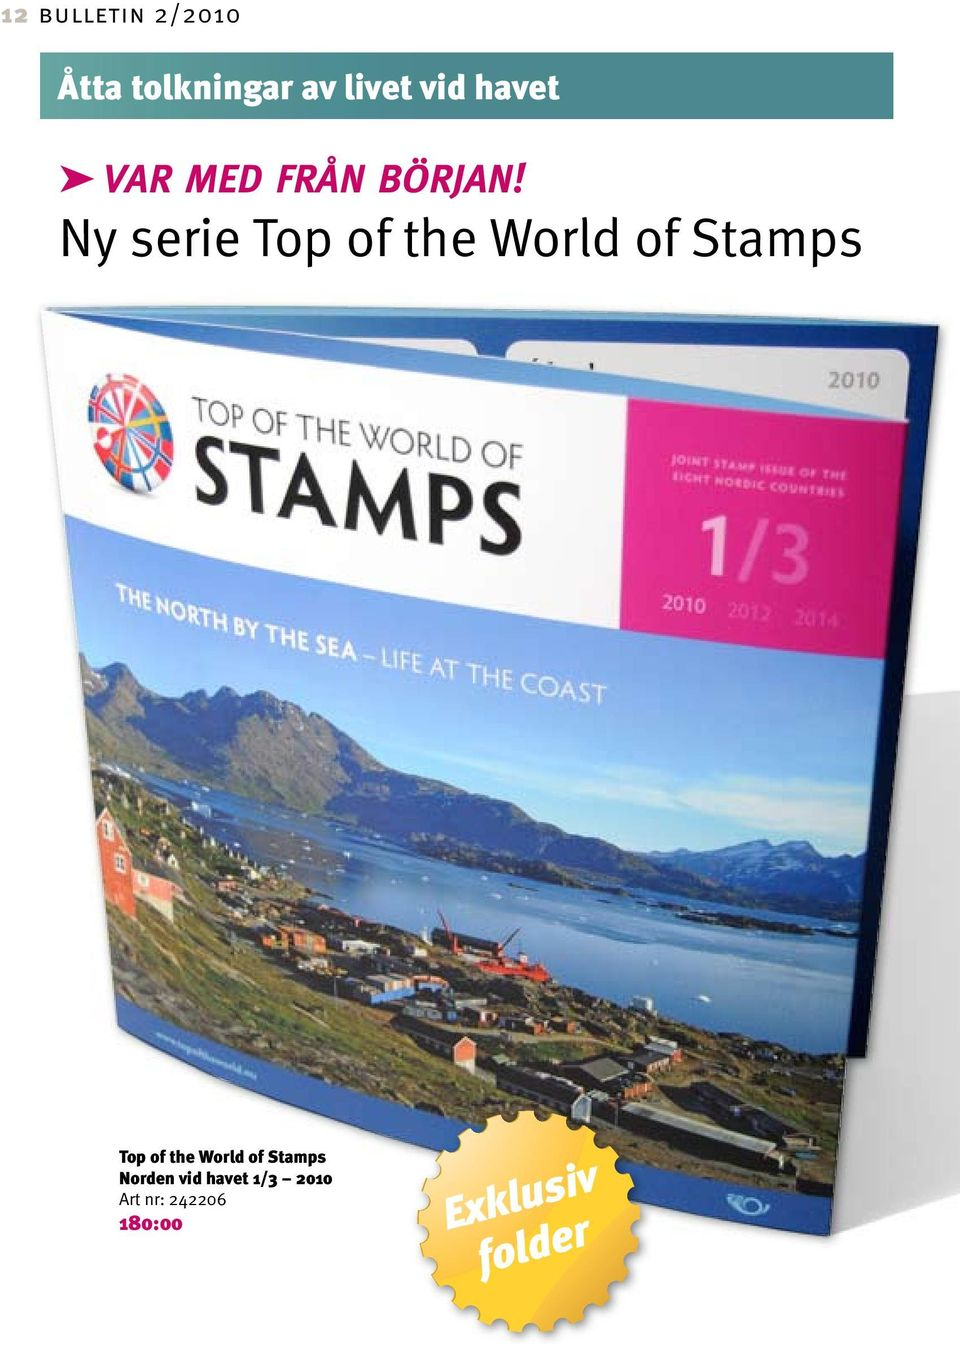 Ny serie Top of the World of Stamps Top of the World